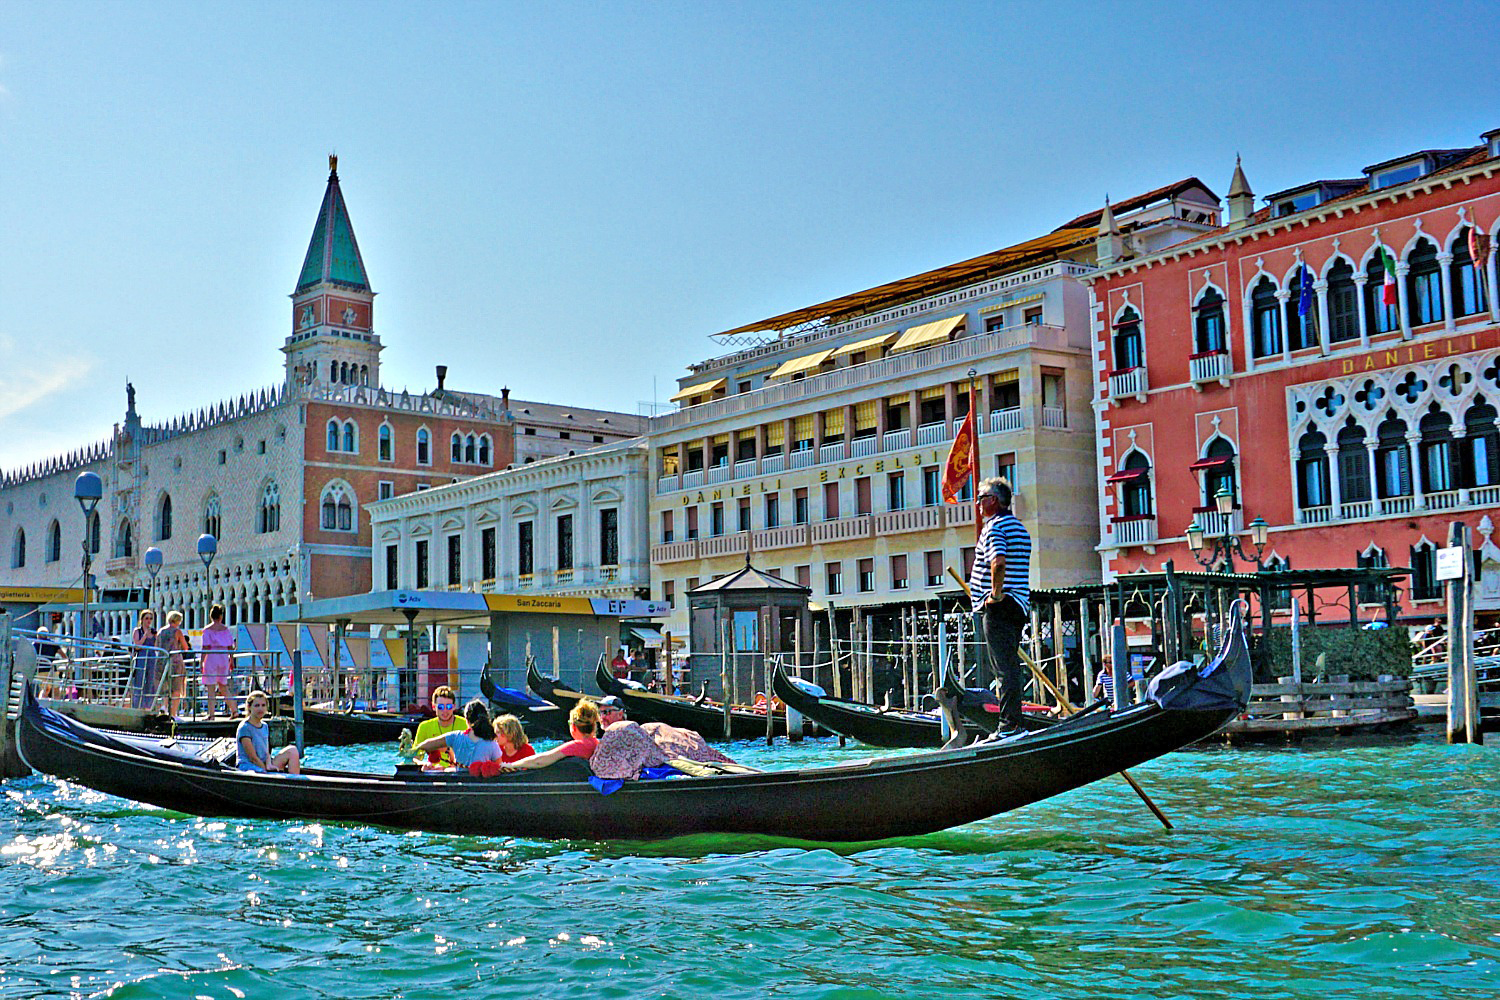 Venice gondola with tourist enjoying the ride.